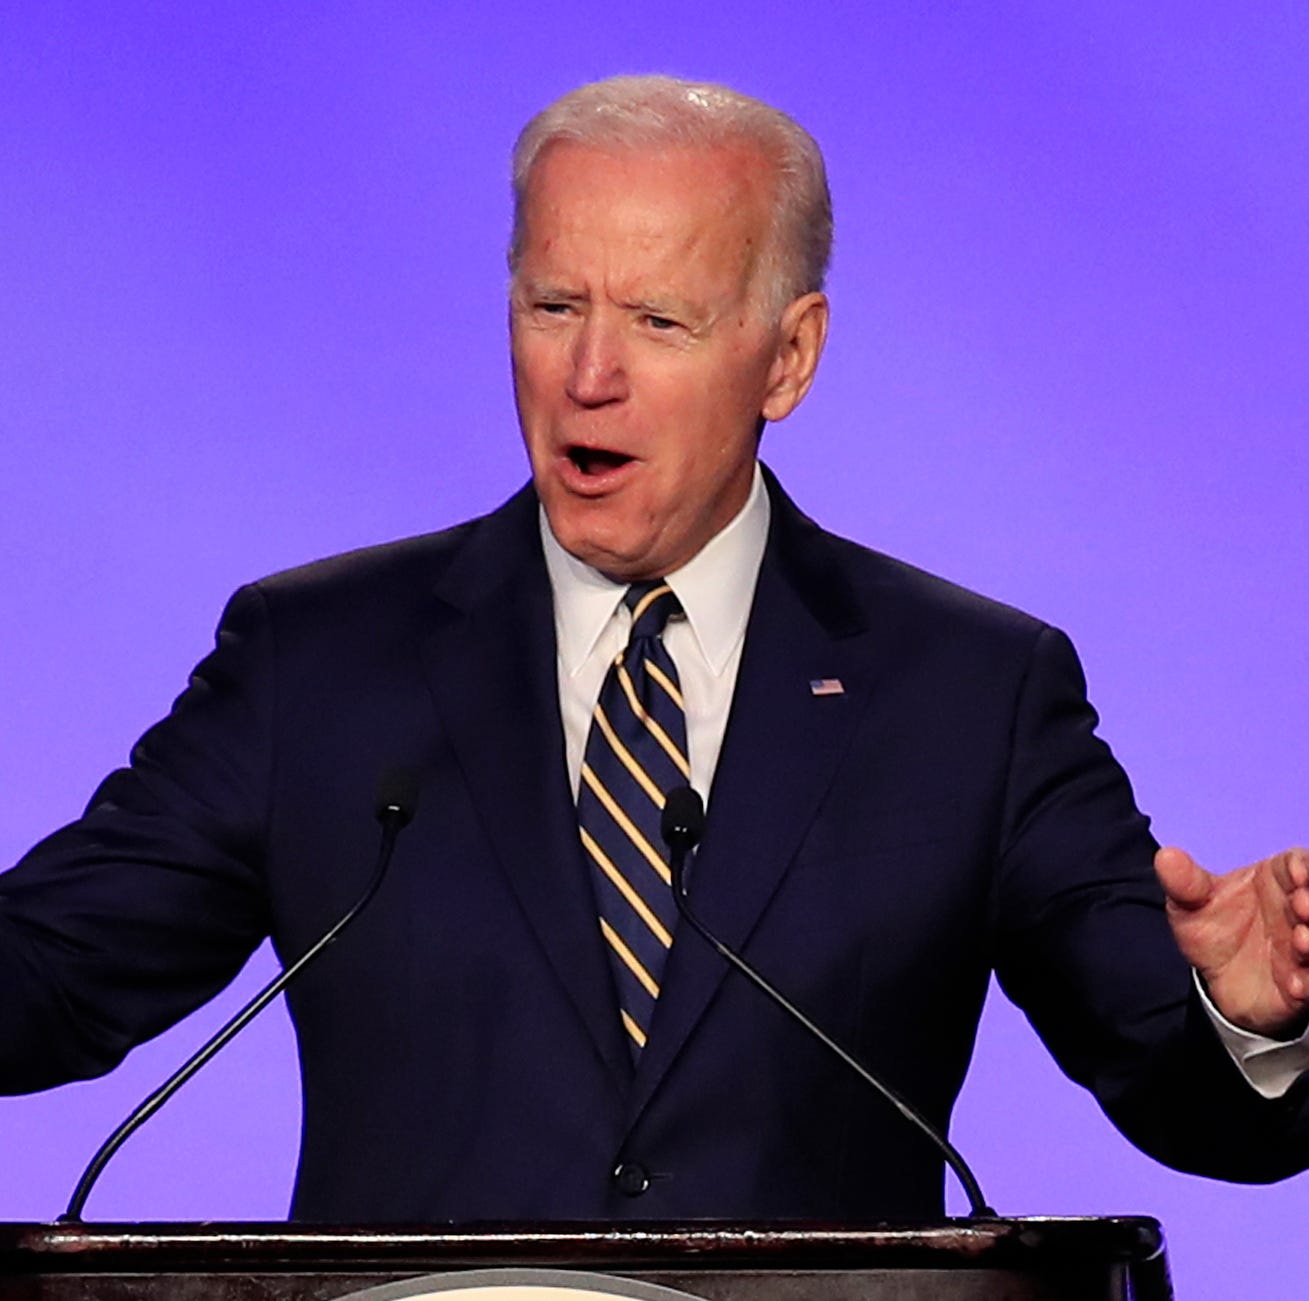 Joe Biden 2020 presidential bid: Does he stand a chance with Pa. voters? Maybe not.